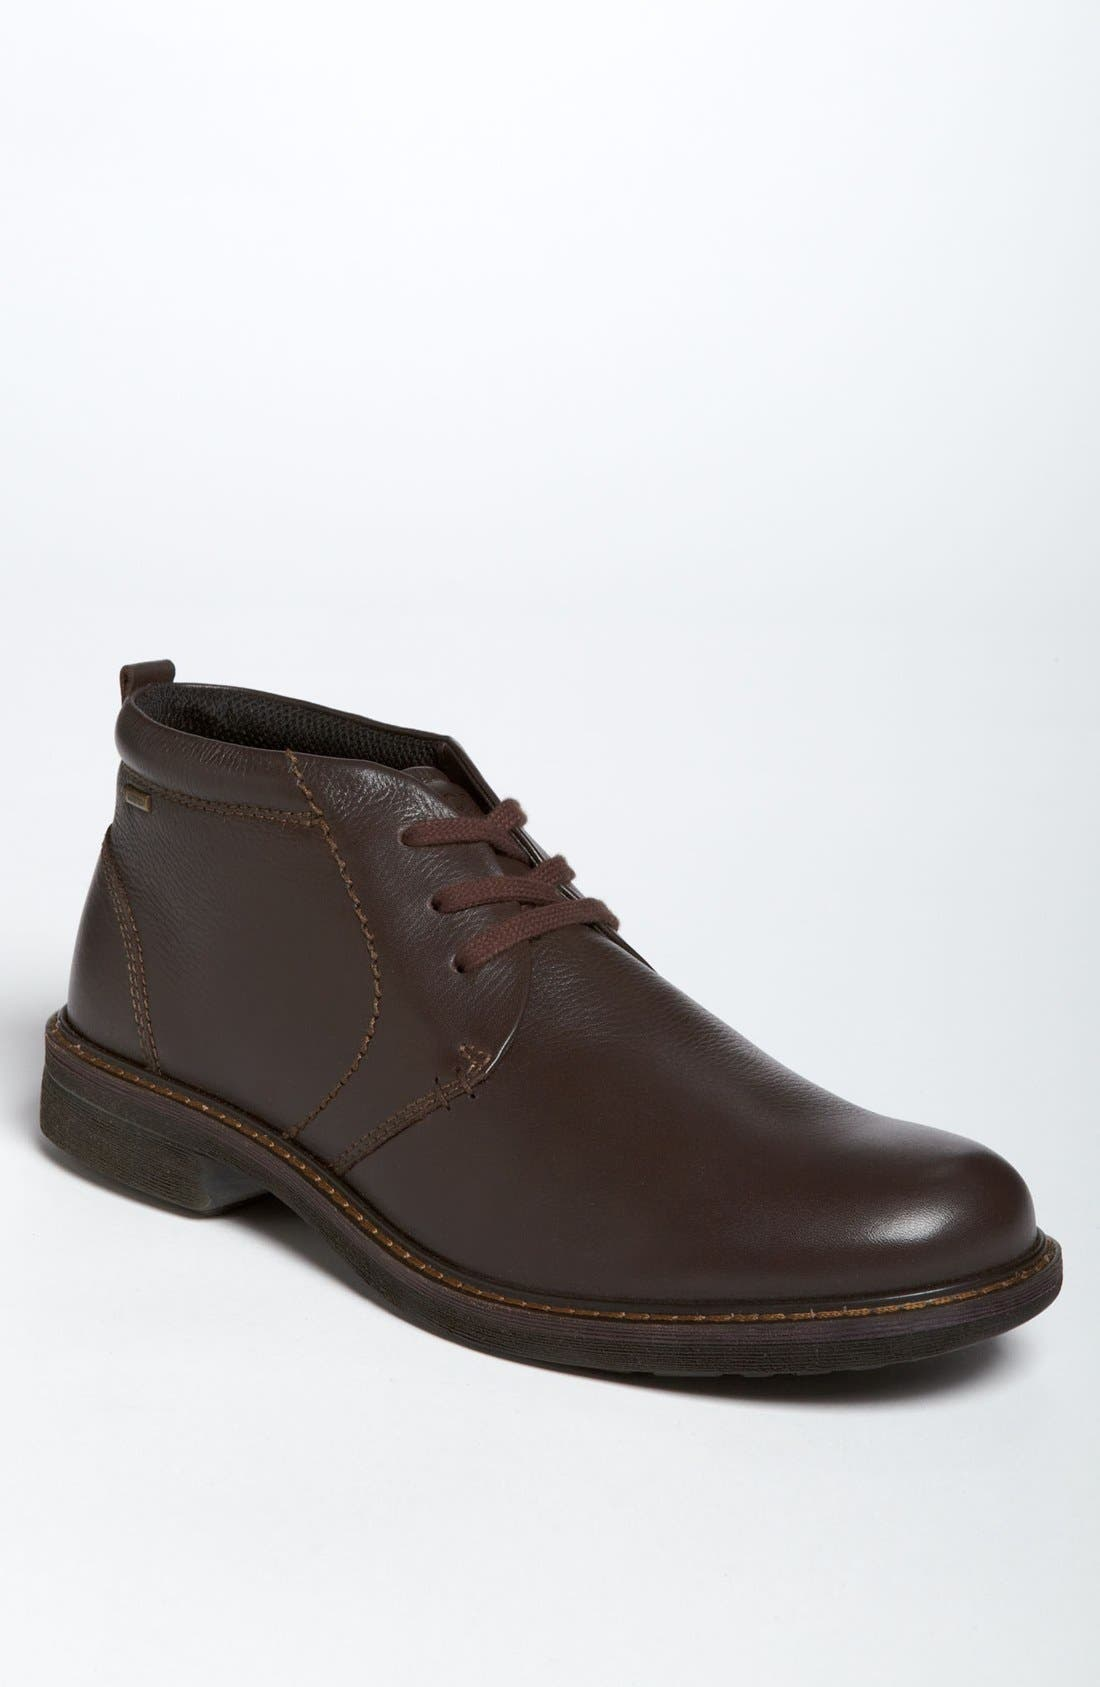 Main Image - ECCO 'Turn' Chukka Boot (Men)